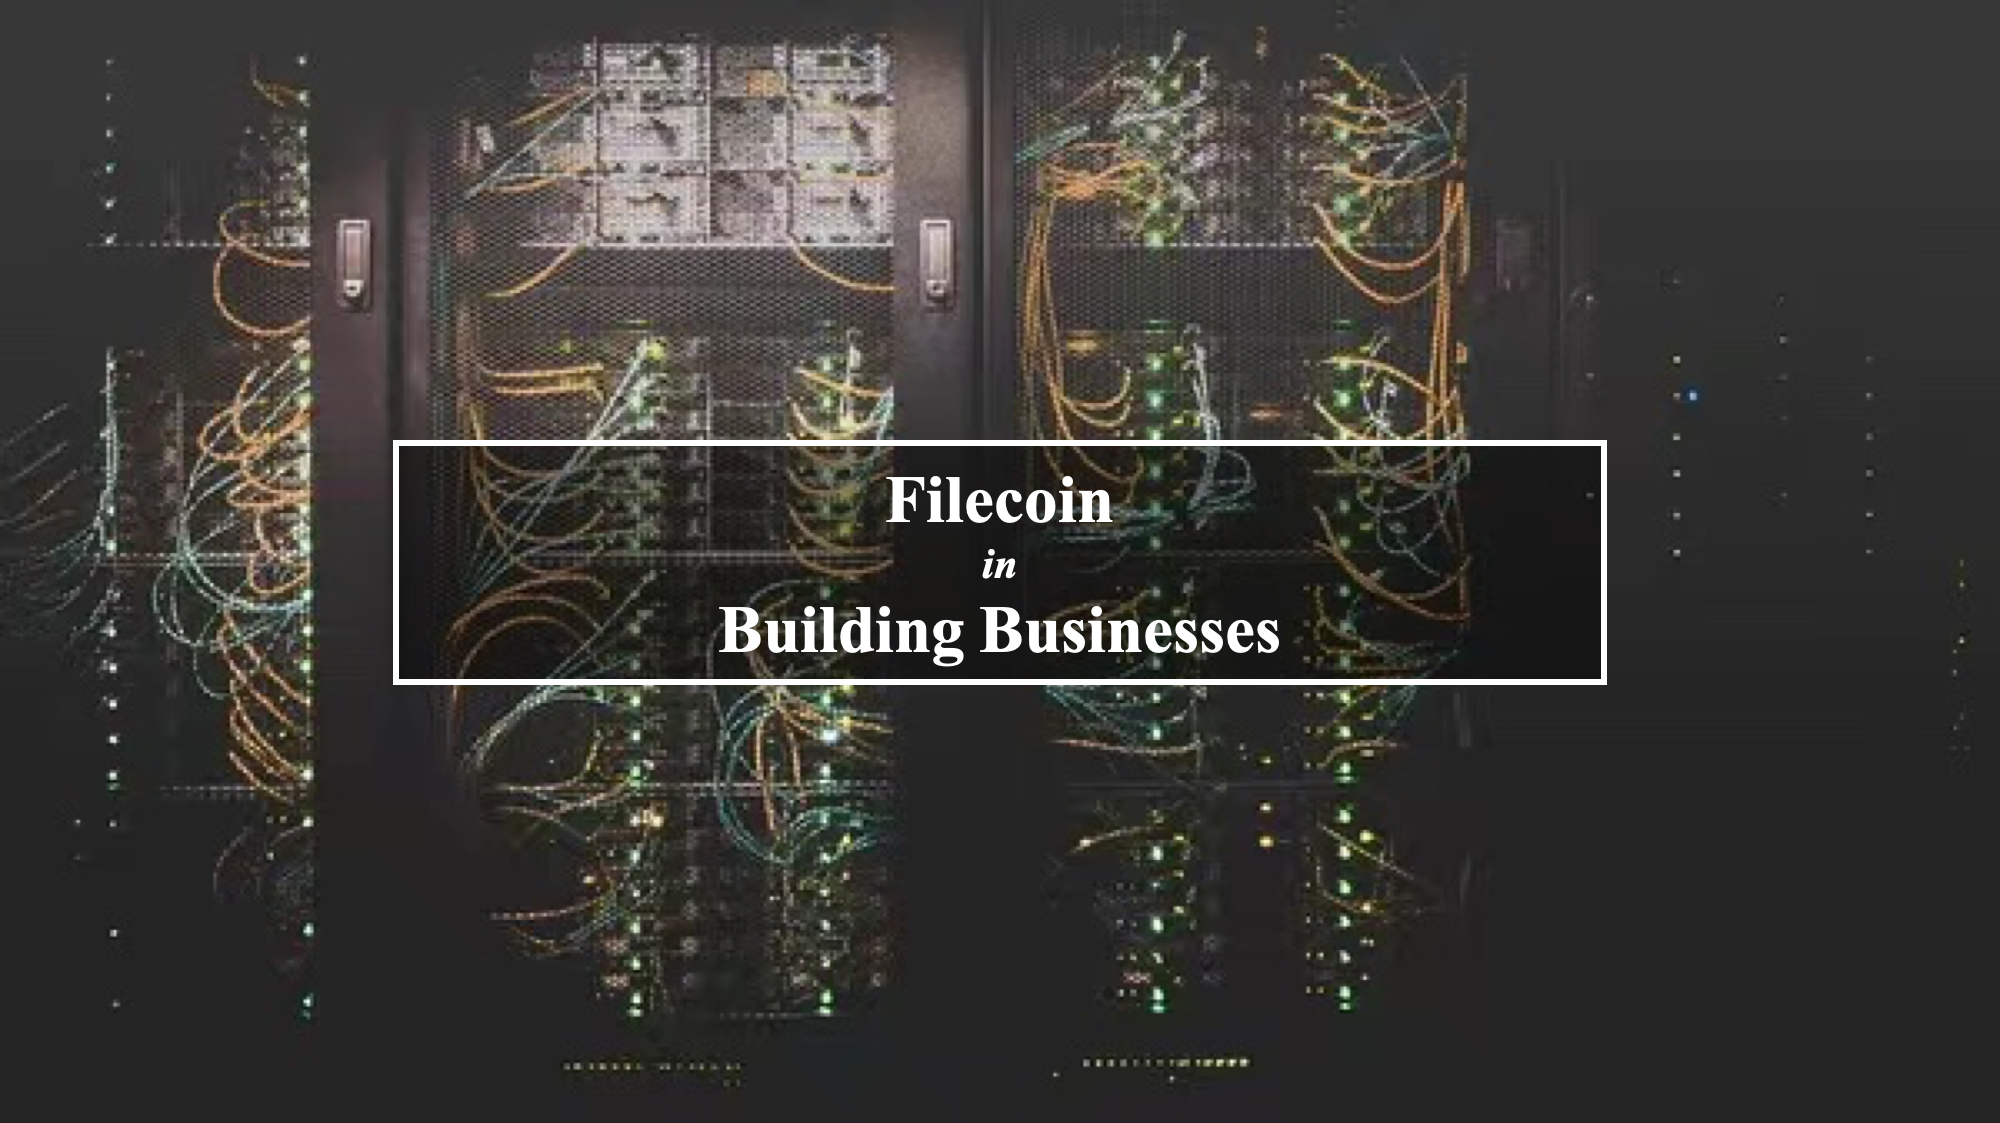 filecoin in businesses 2.png